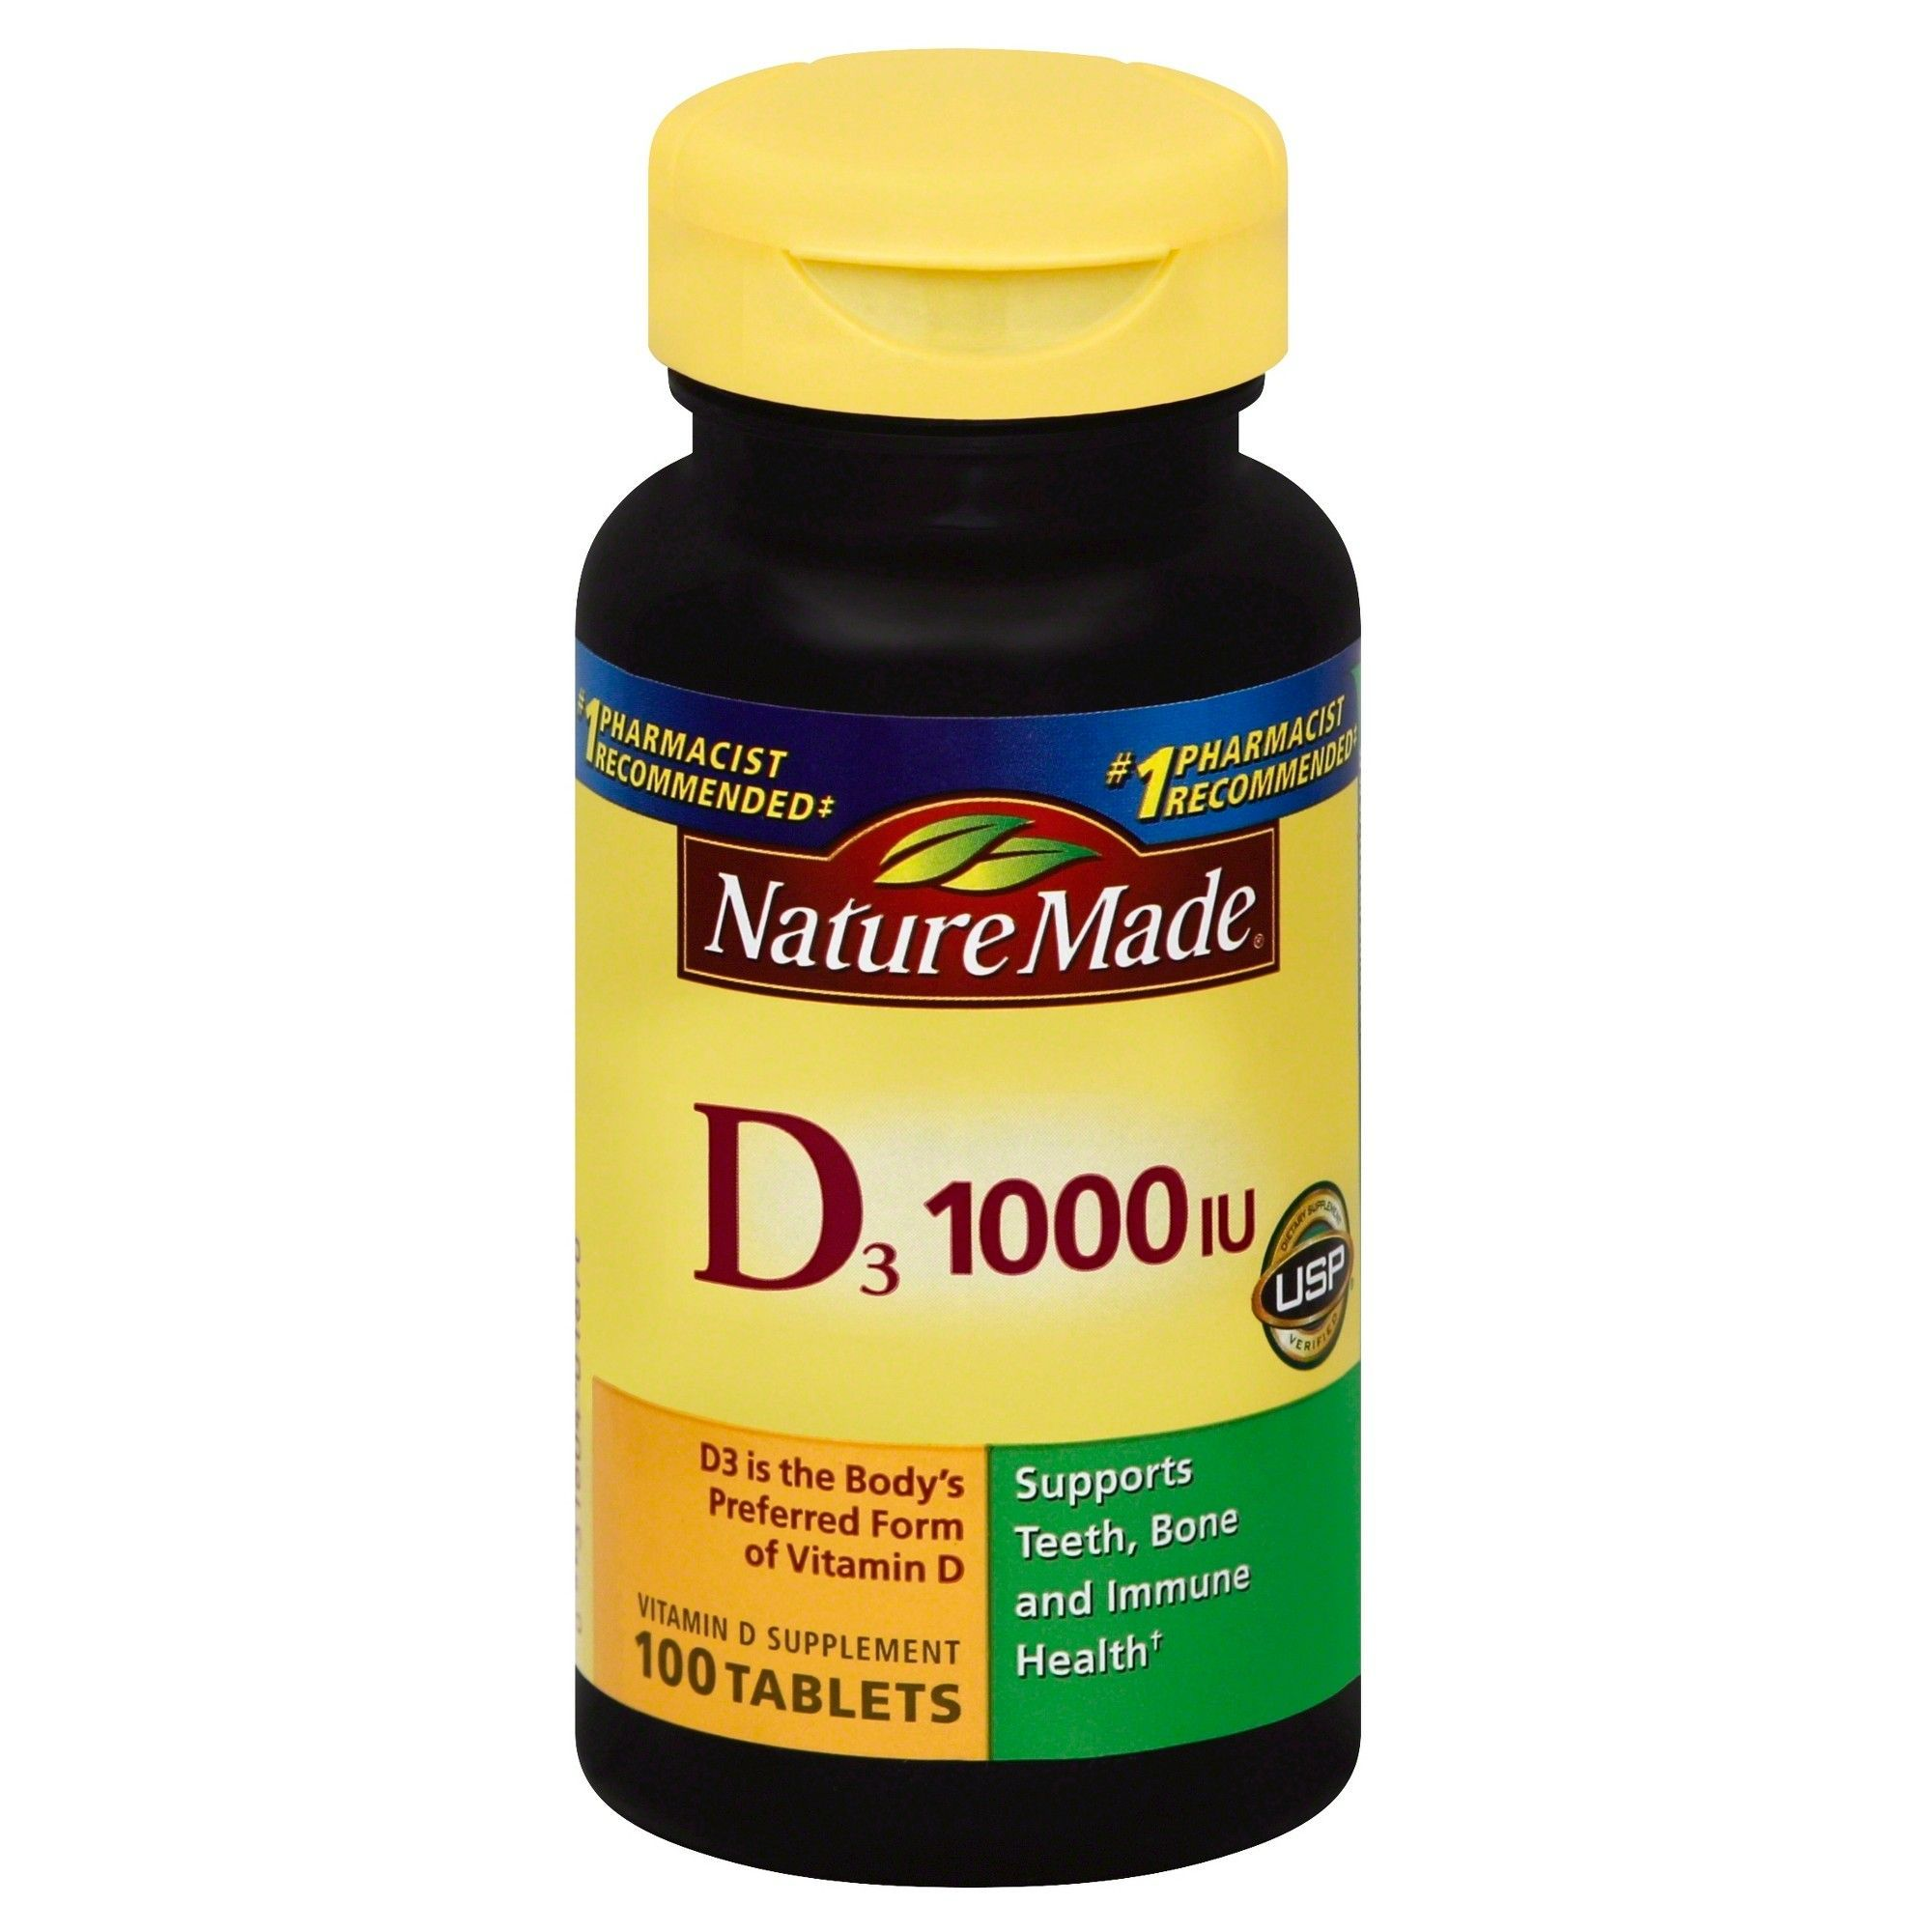 Nature Made Vitamin D3 1000 IU (25 mcg) Tablets 100ct